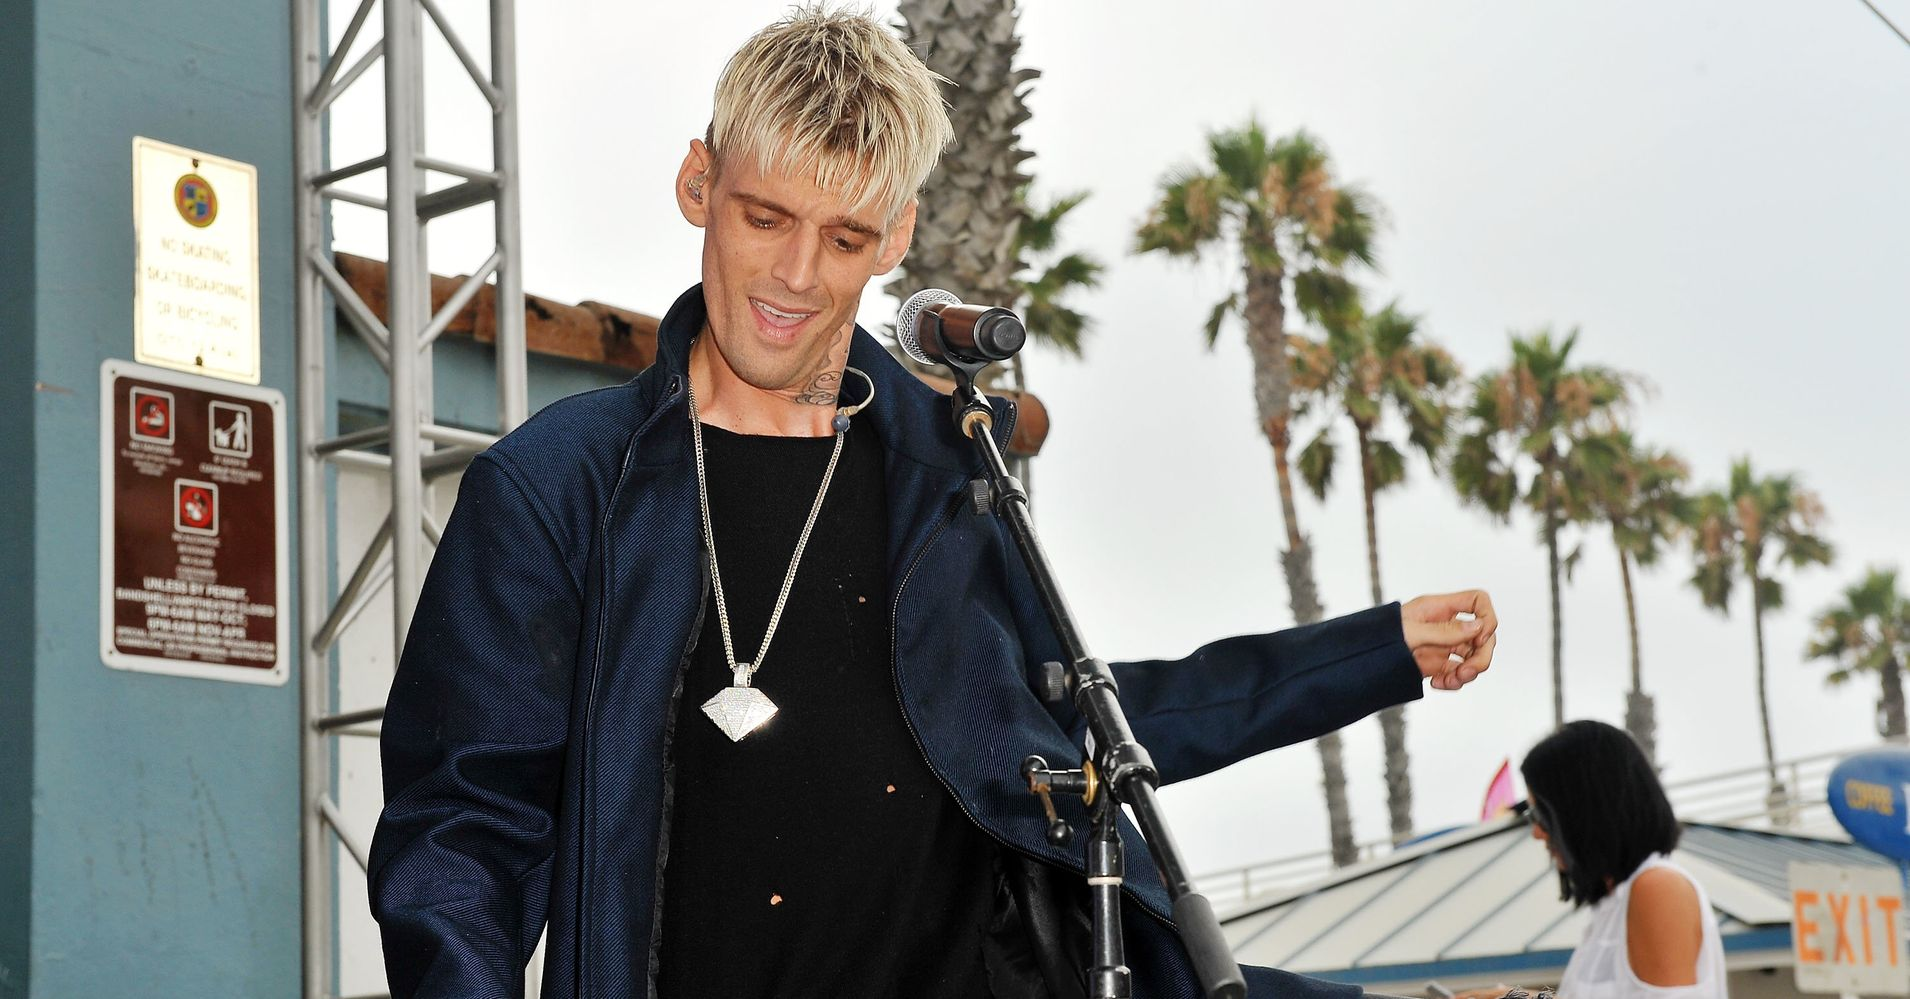 Fatherhood a priority for Aaron Carter | Inquirer